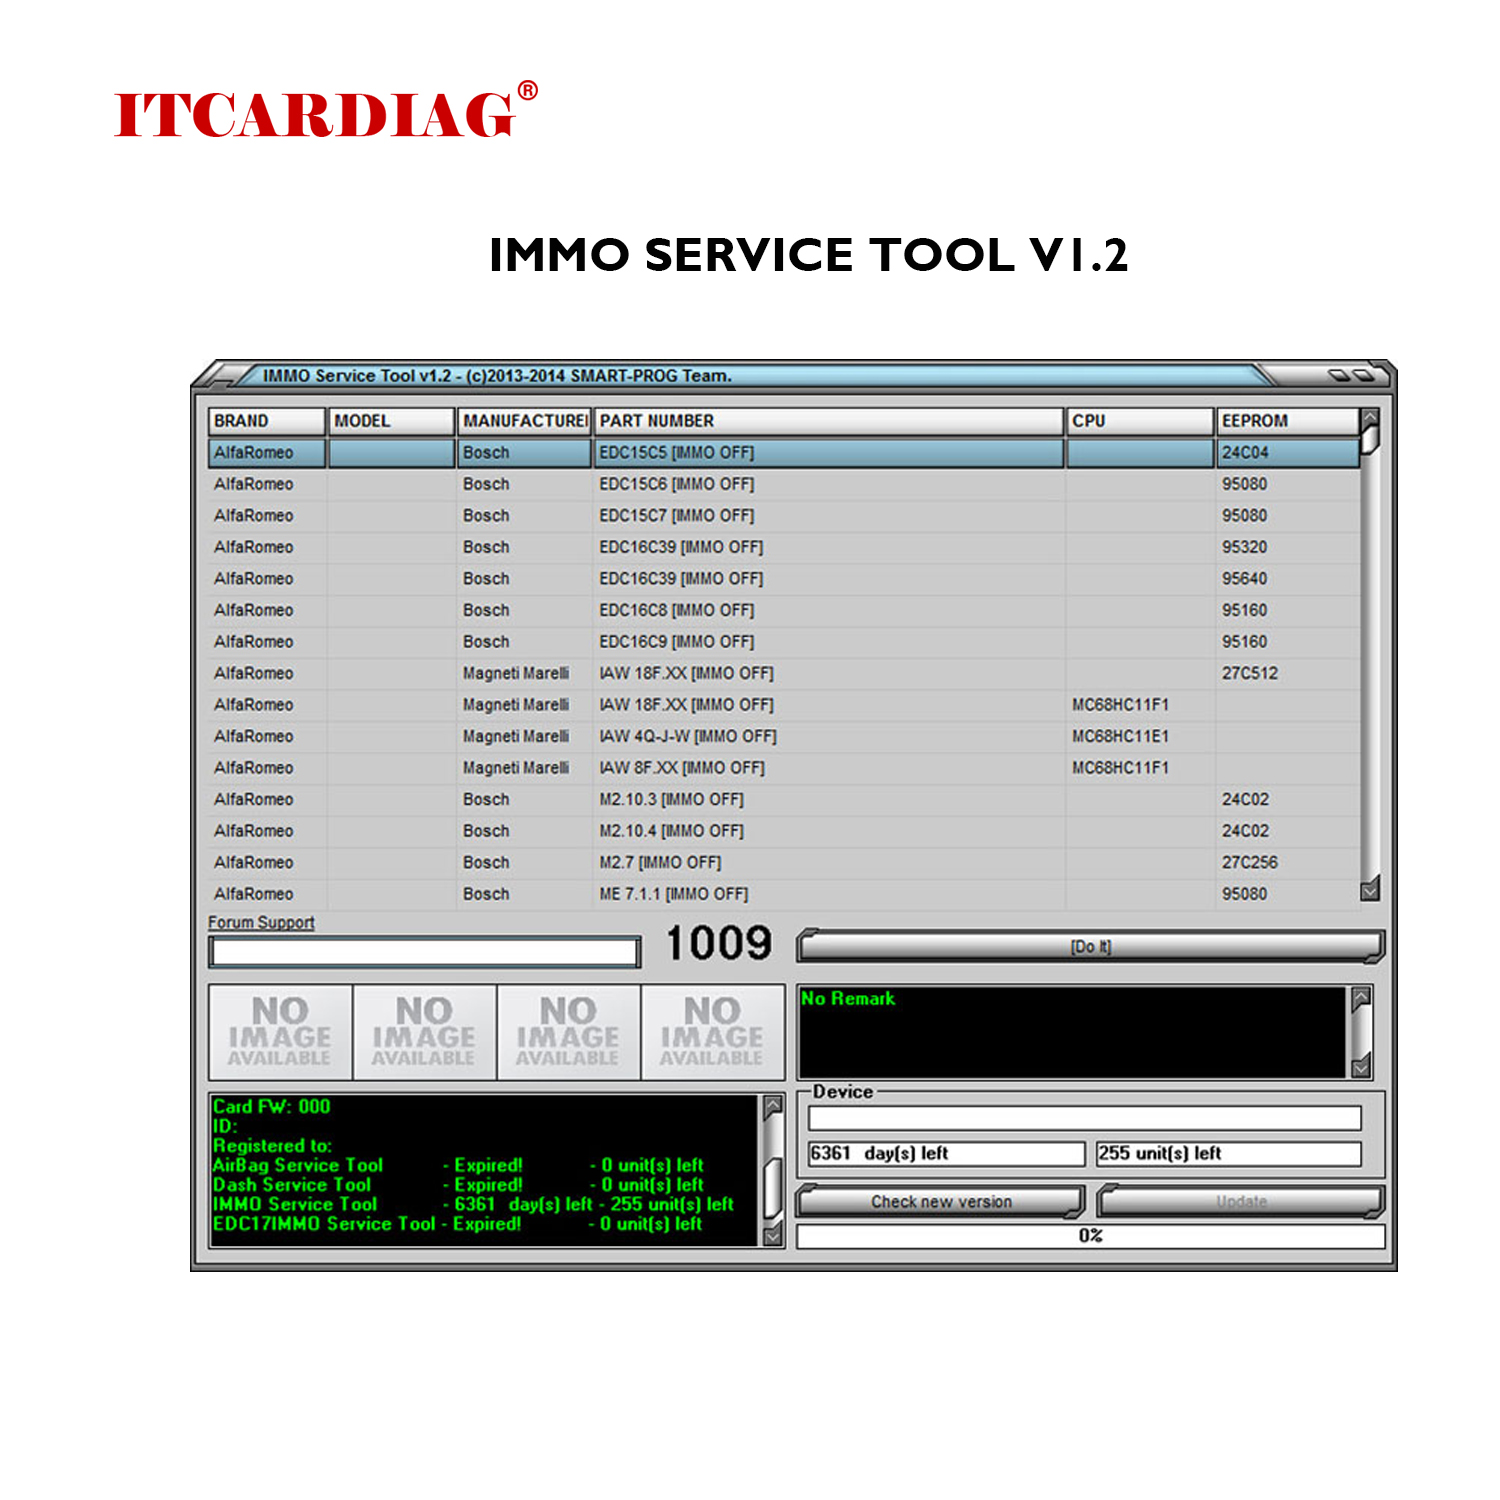 2019 Edc 17 IMMO SERVICE TOOL V1.2 PIN Code And Immo Off Works Without Registration For AlfaRomeo Audi BMW Citroen Fiat